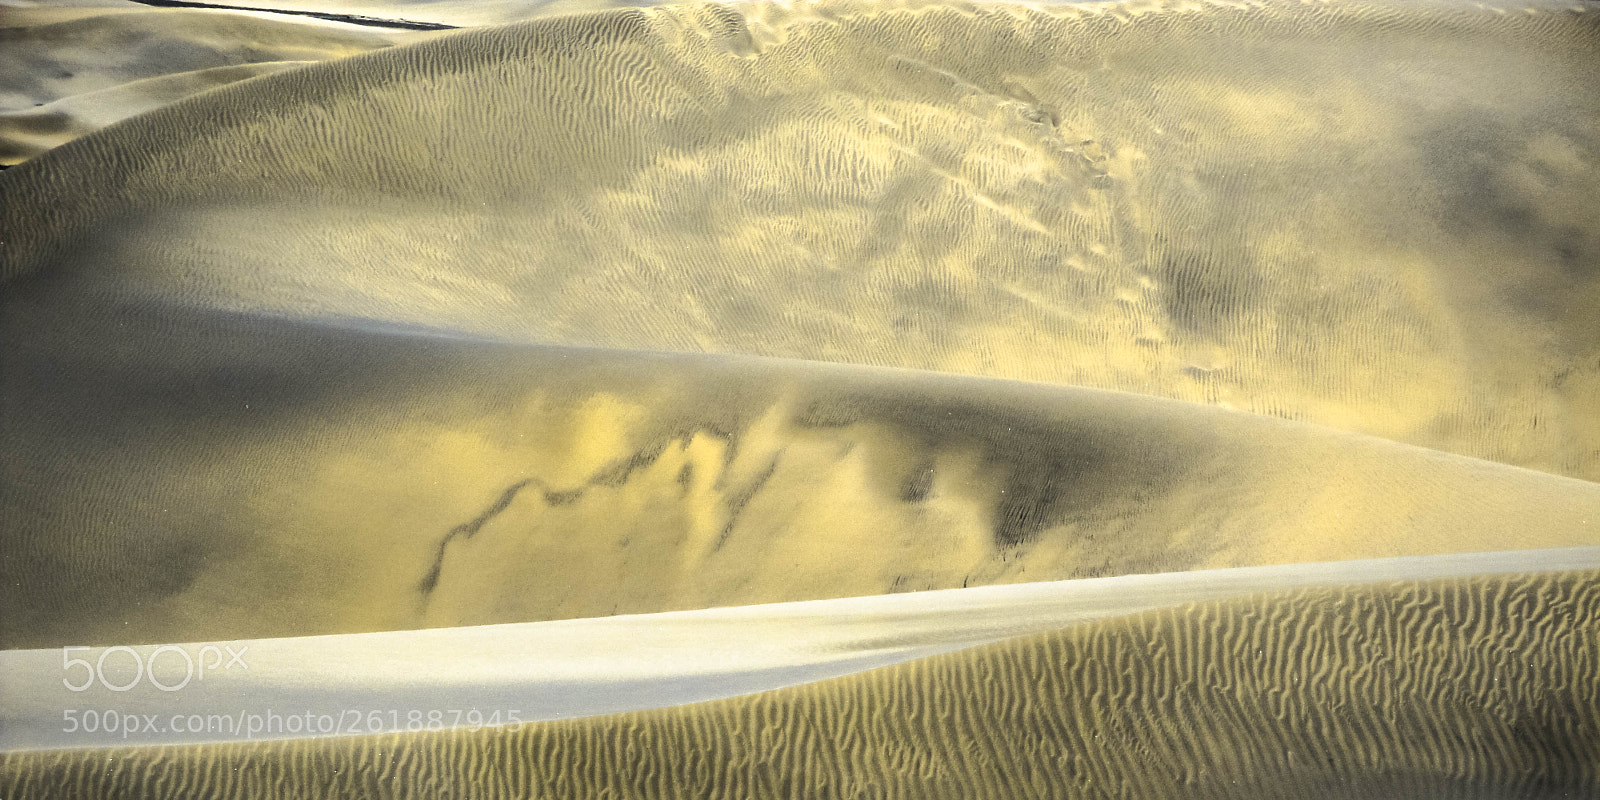 SAND dunes scars&scratches